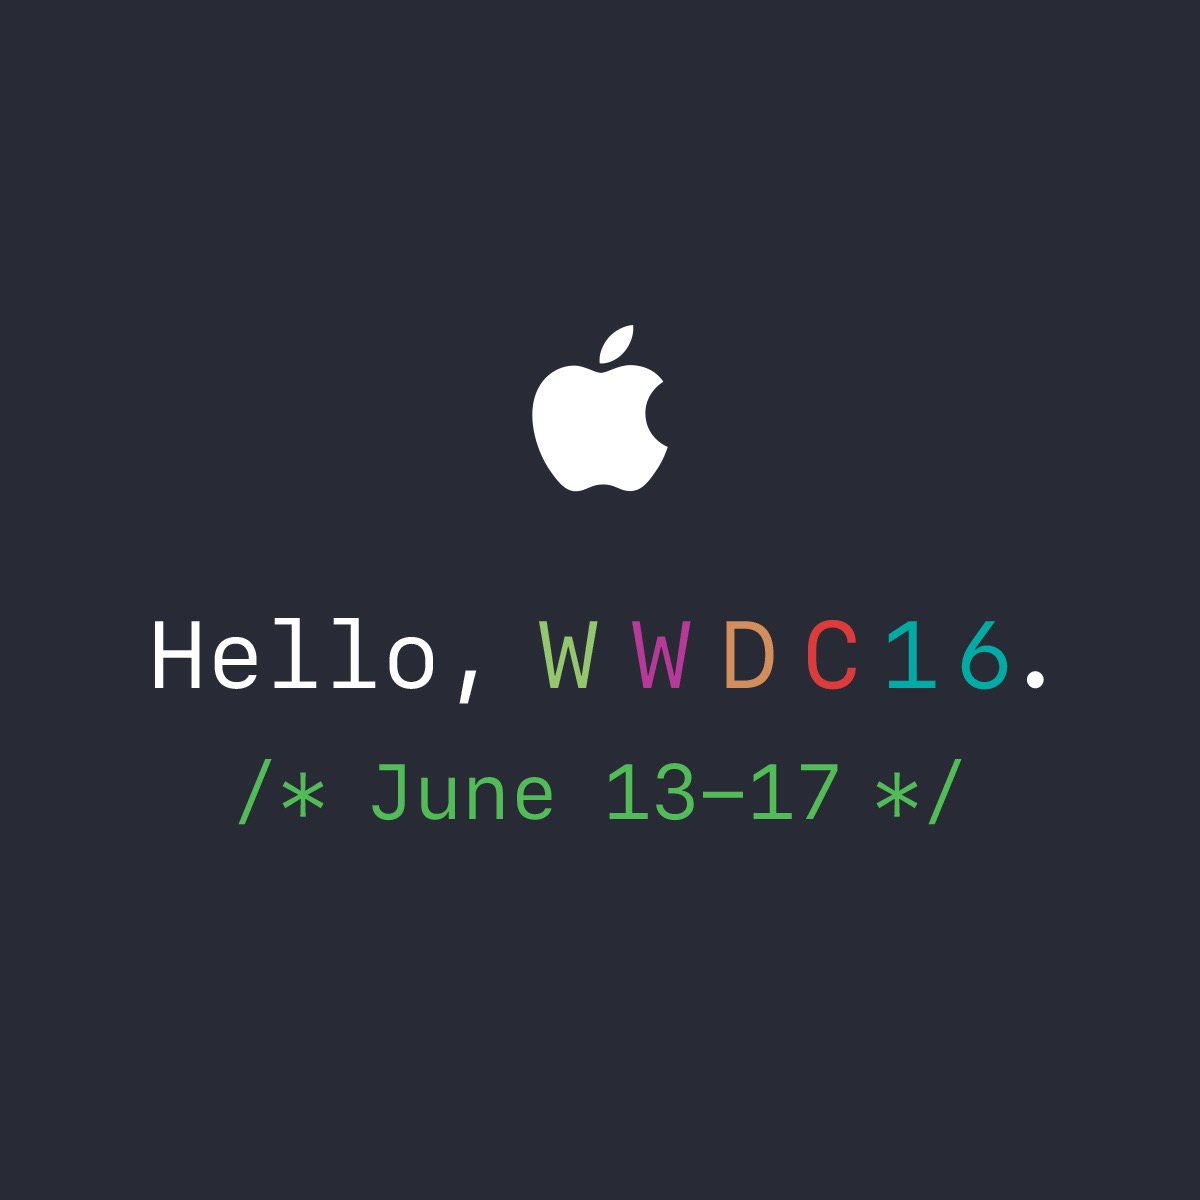 WWDC 2016 Thoughts